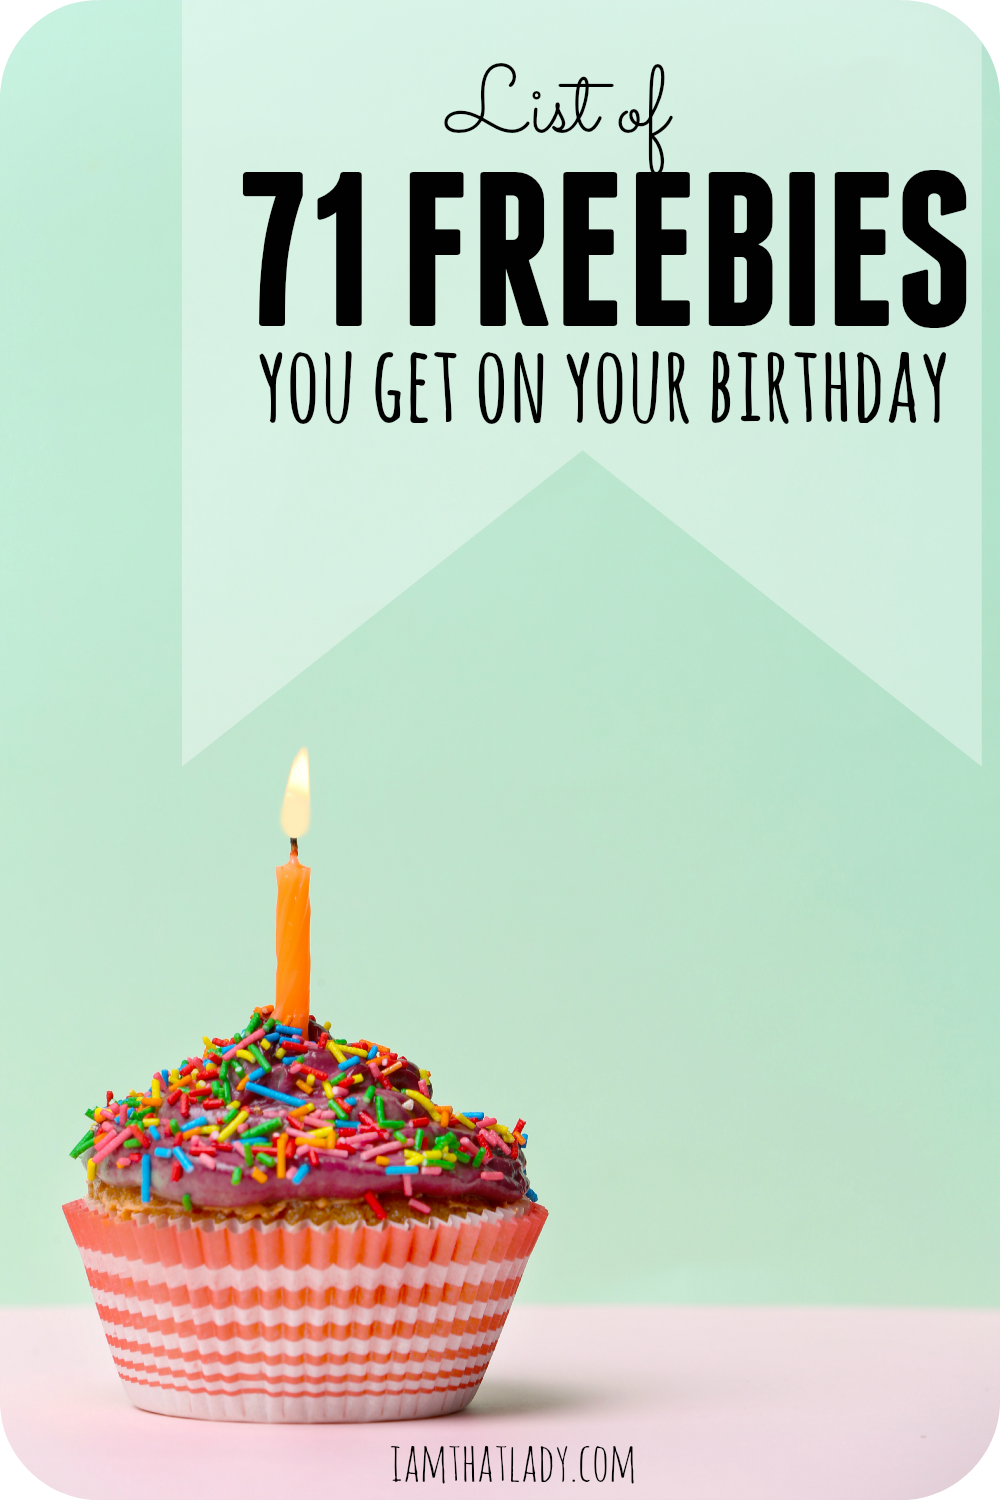 Birthday Freebies list of over 50 things to get for FREE on your